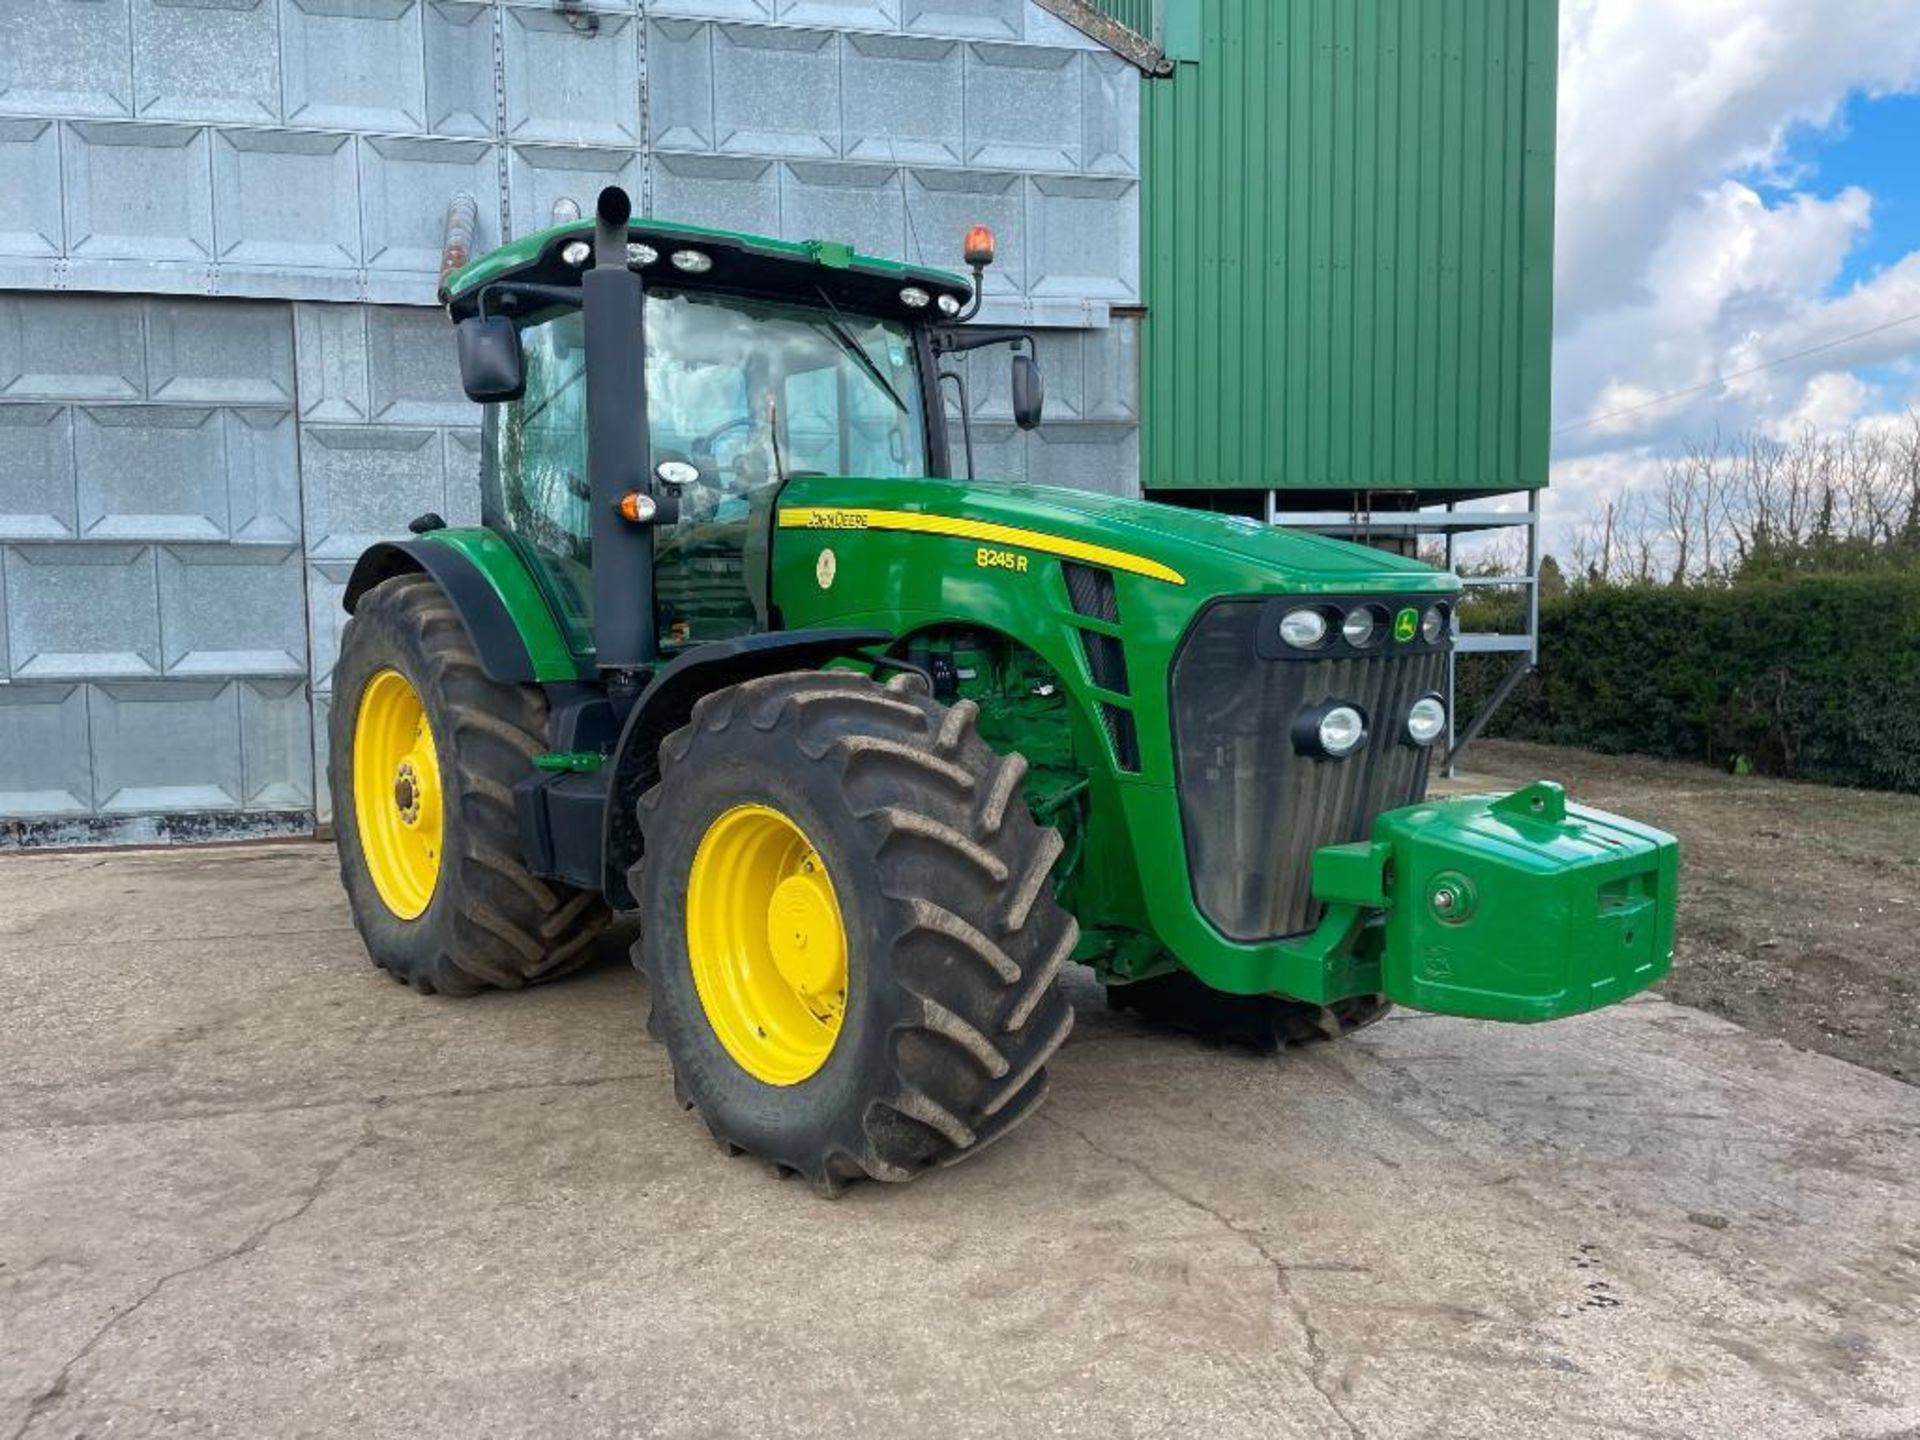 2011 John Deere 8245R 40kph Powershift with 4 electric spools, TLS front suspension and 900kg front - Image 14 of 18